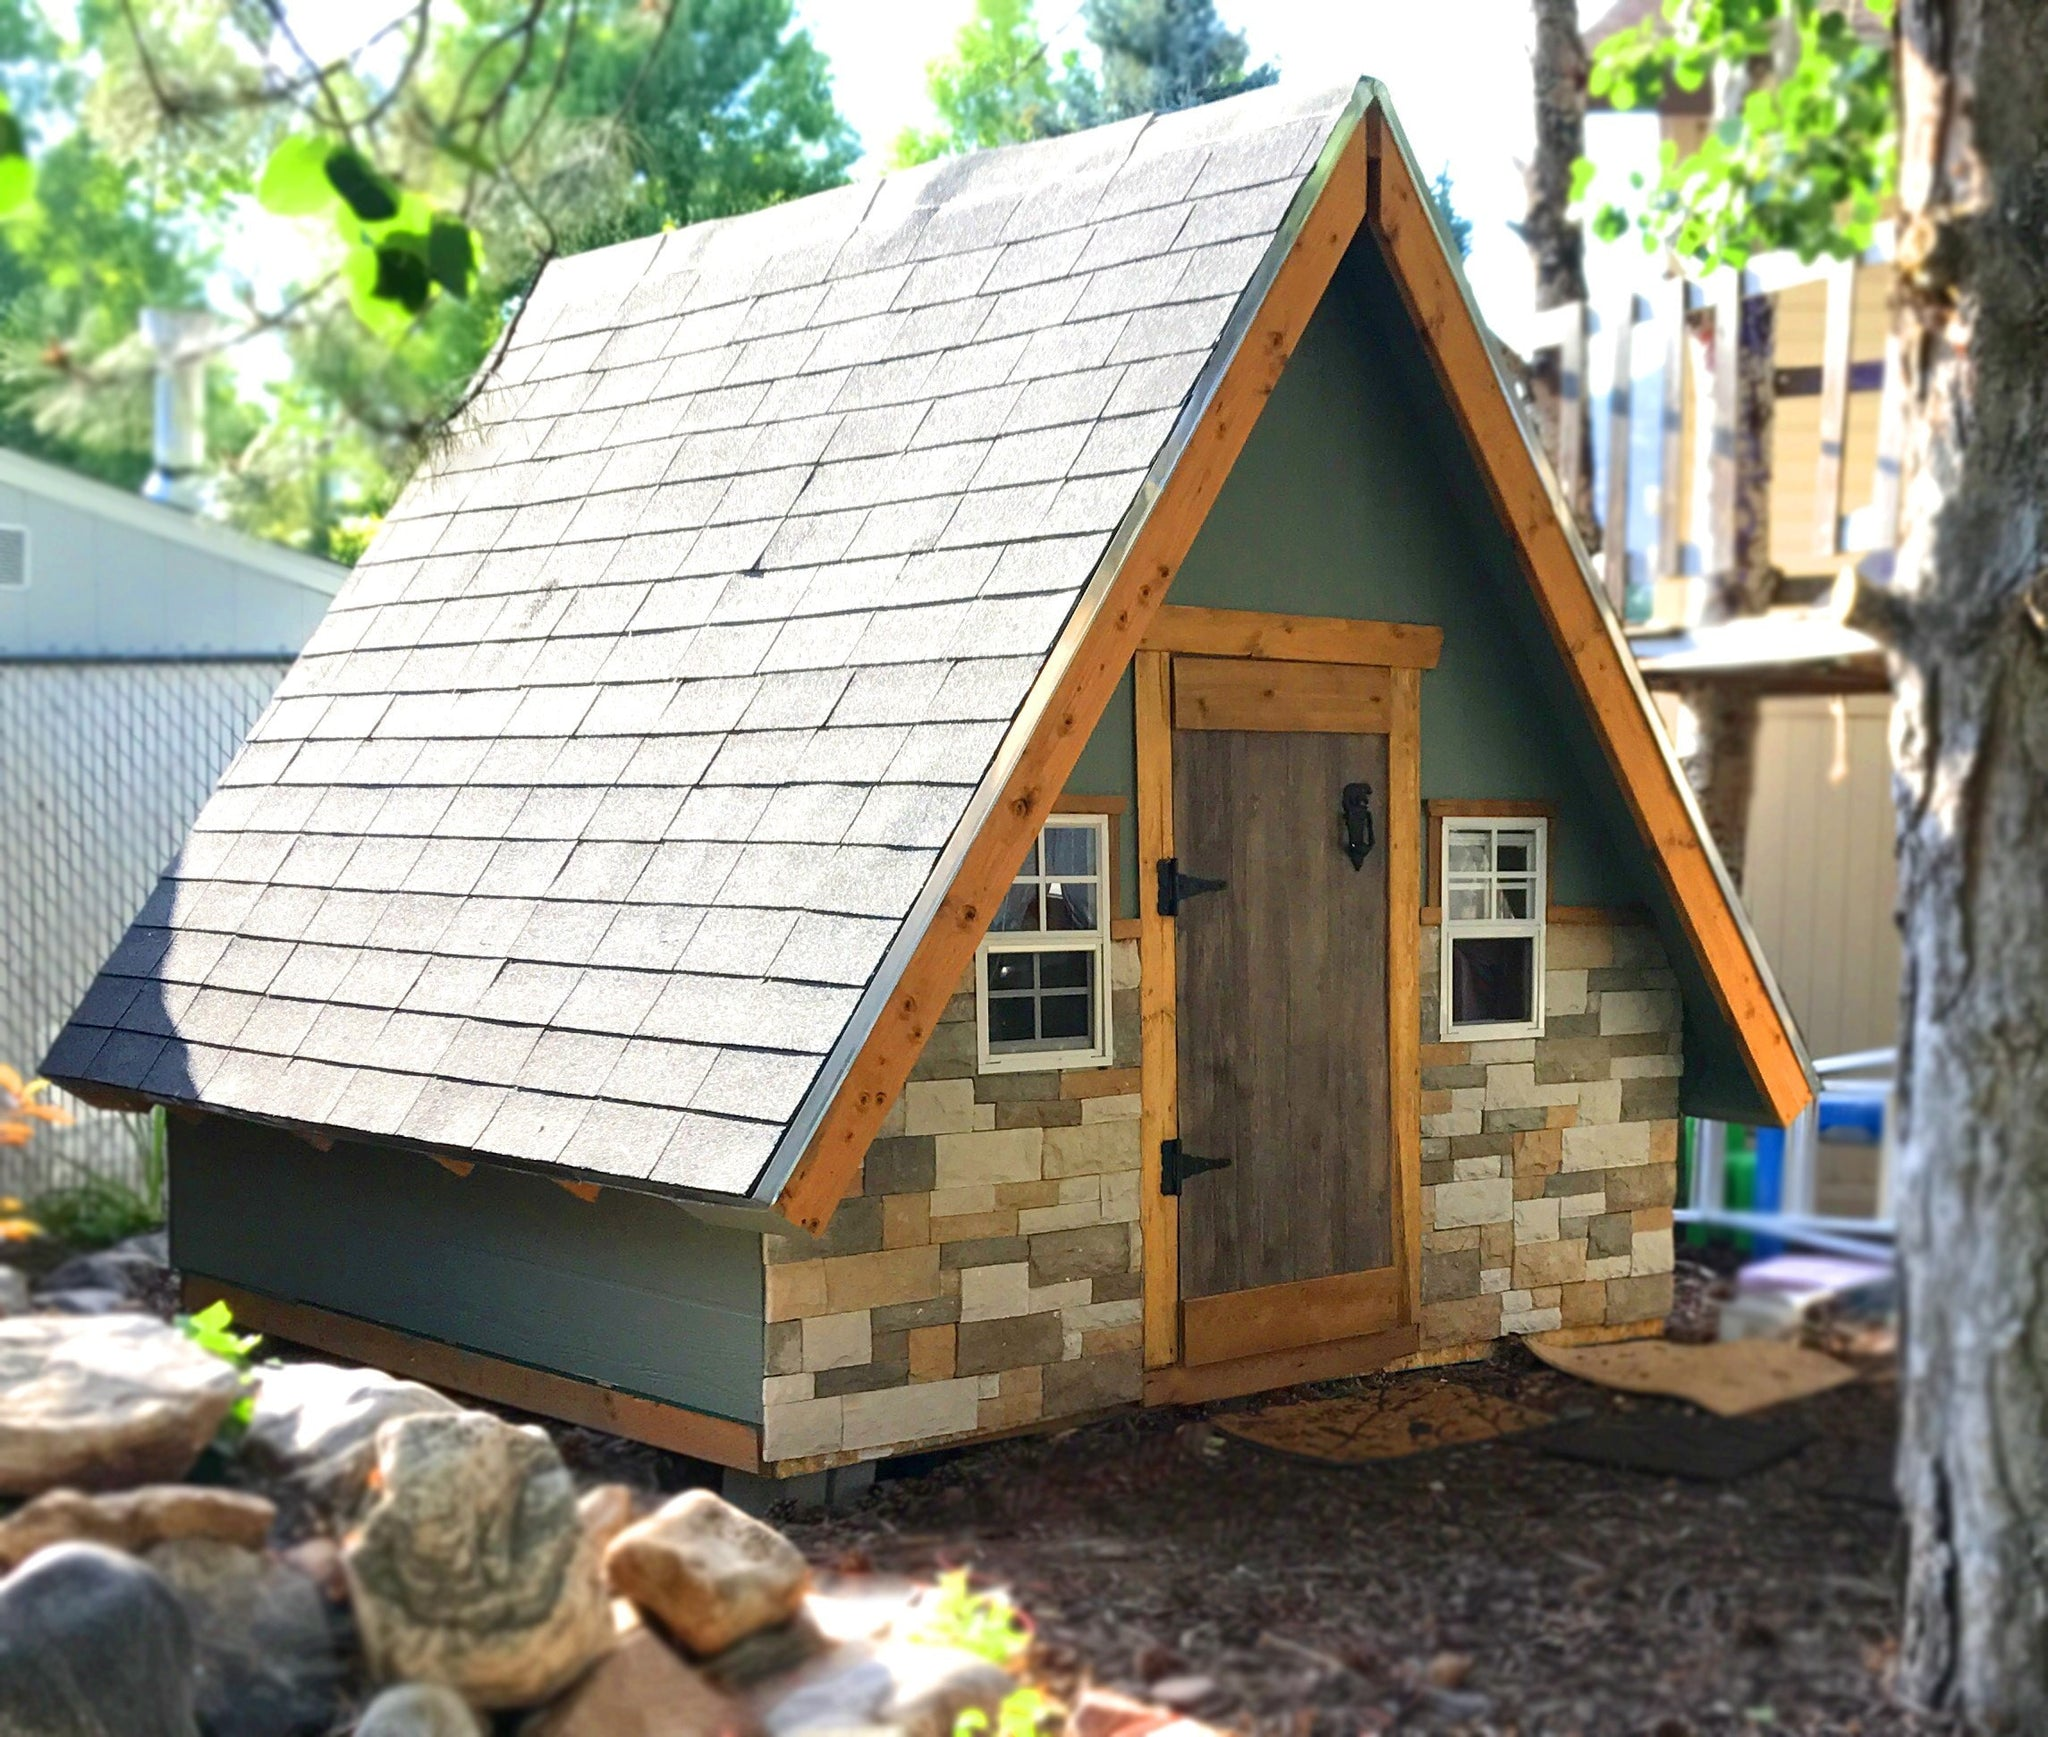 A Frame Playhouse Plan 8x8 Wood Plan For Kids Paul S